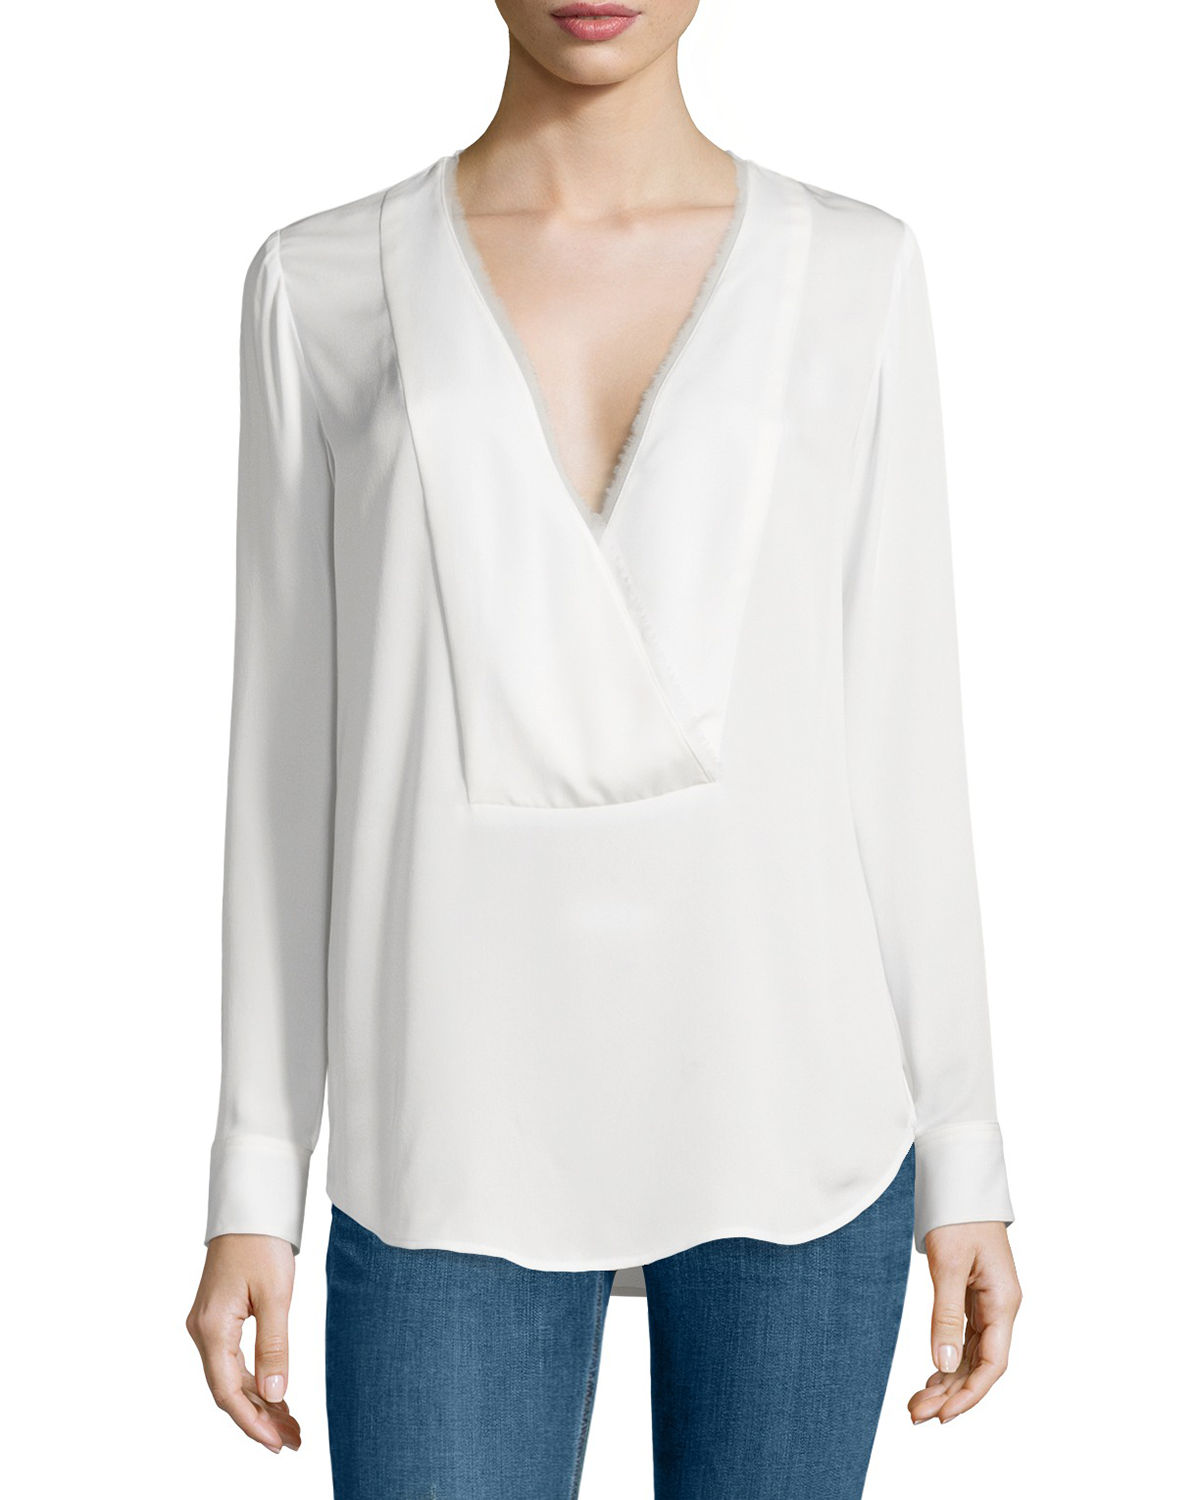 Ramalla Reversible Long-Sleeve Top